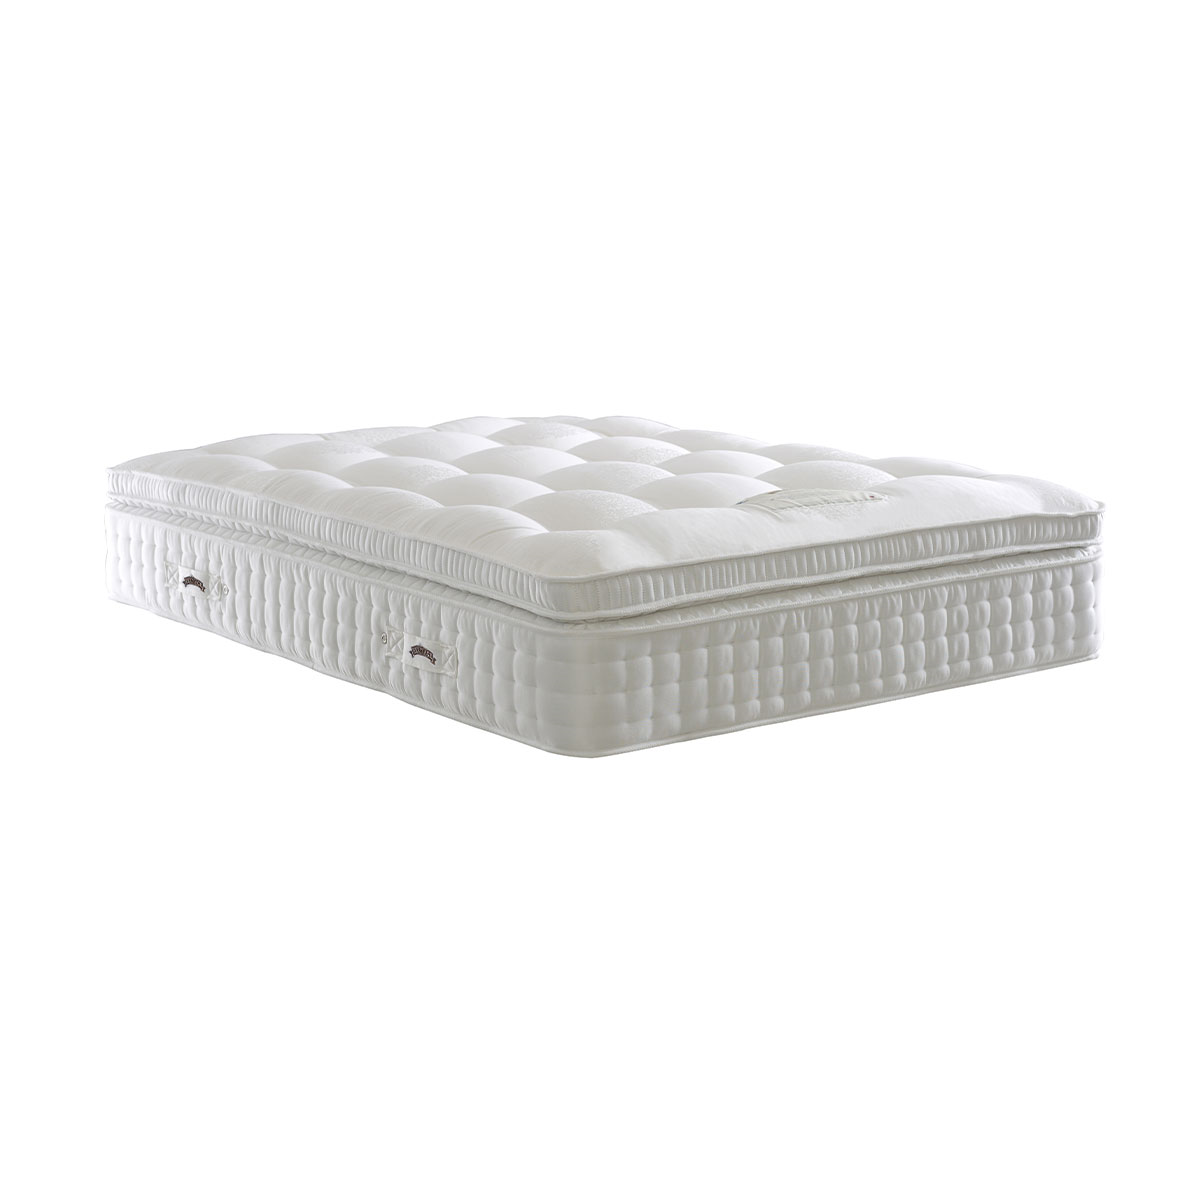 Natural 5500 Platinum Mattress 34cm Deep (Medium Firm)